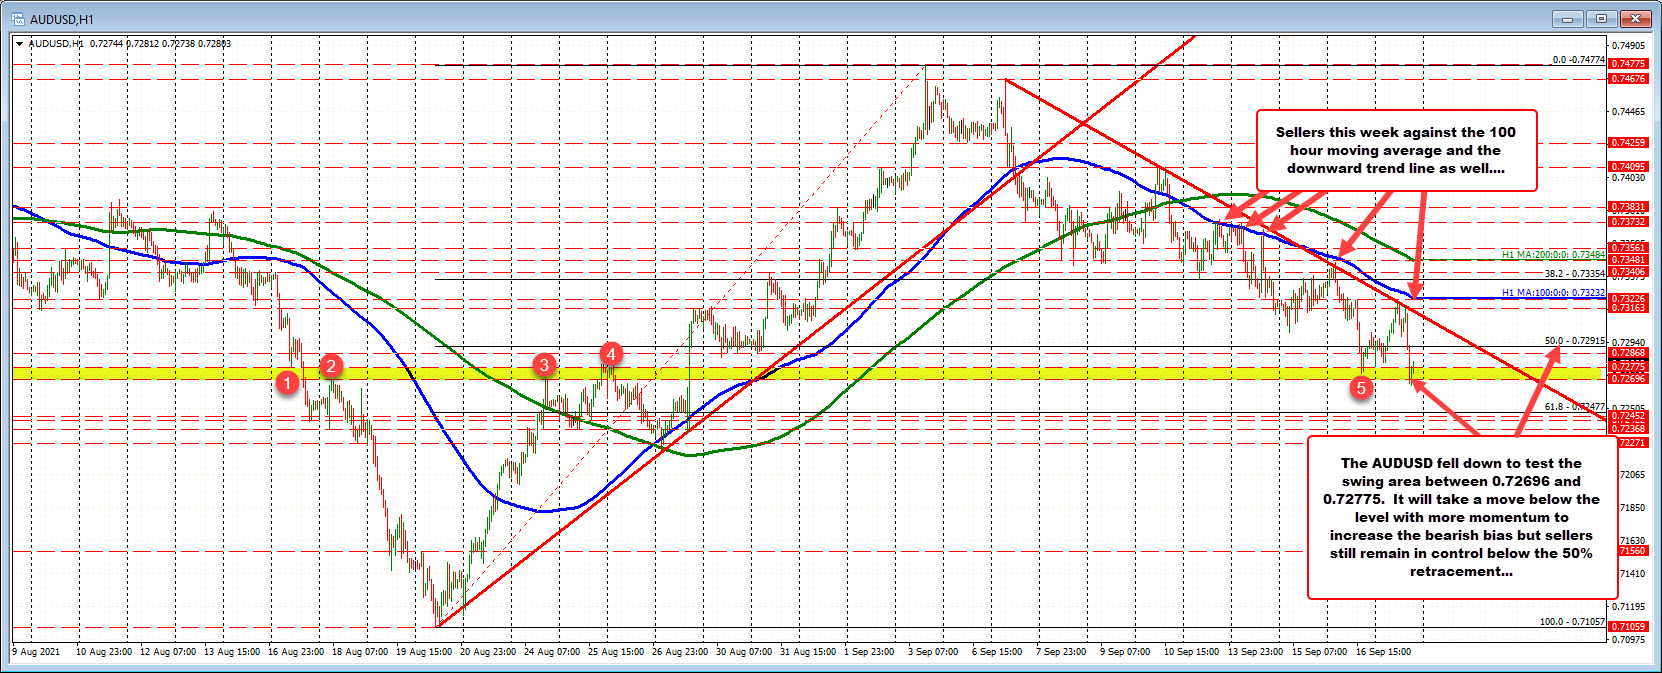 AUDUSD stays below trend today. Sellers remain in control